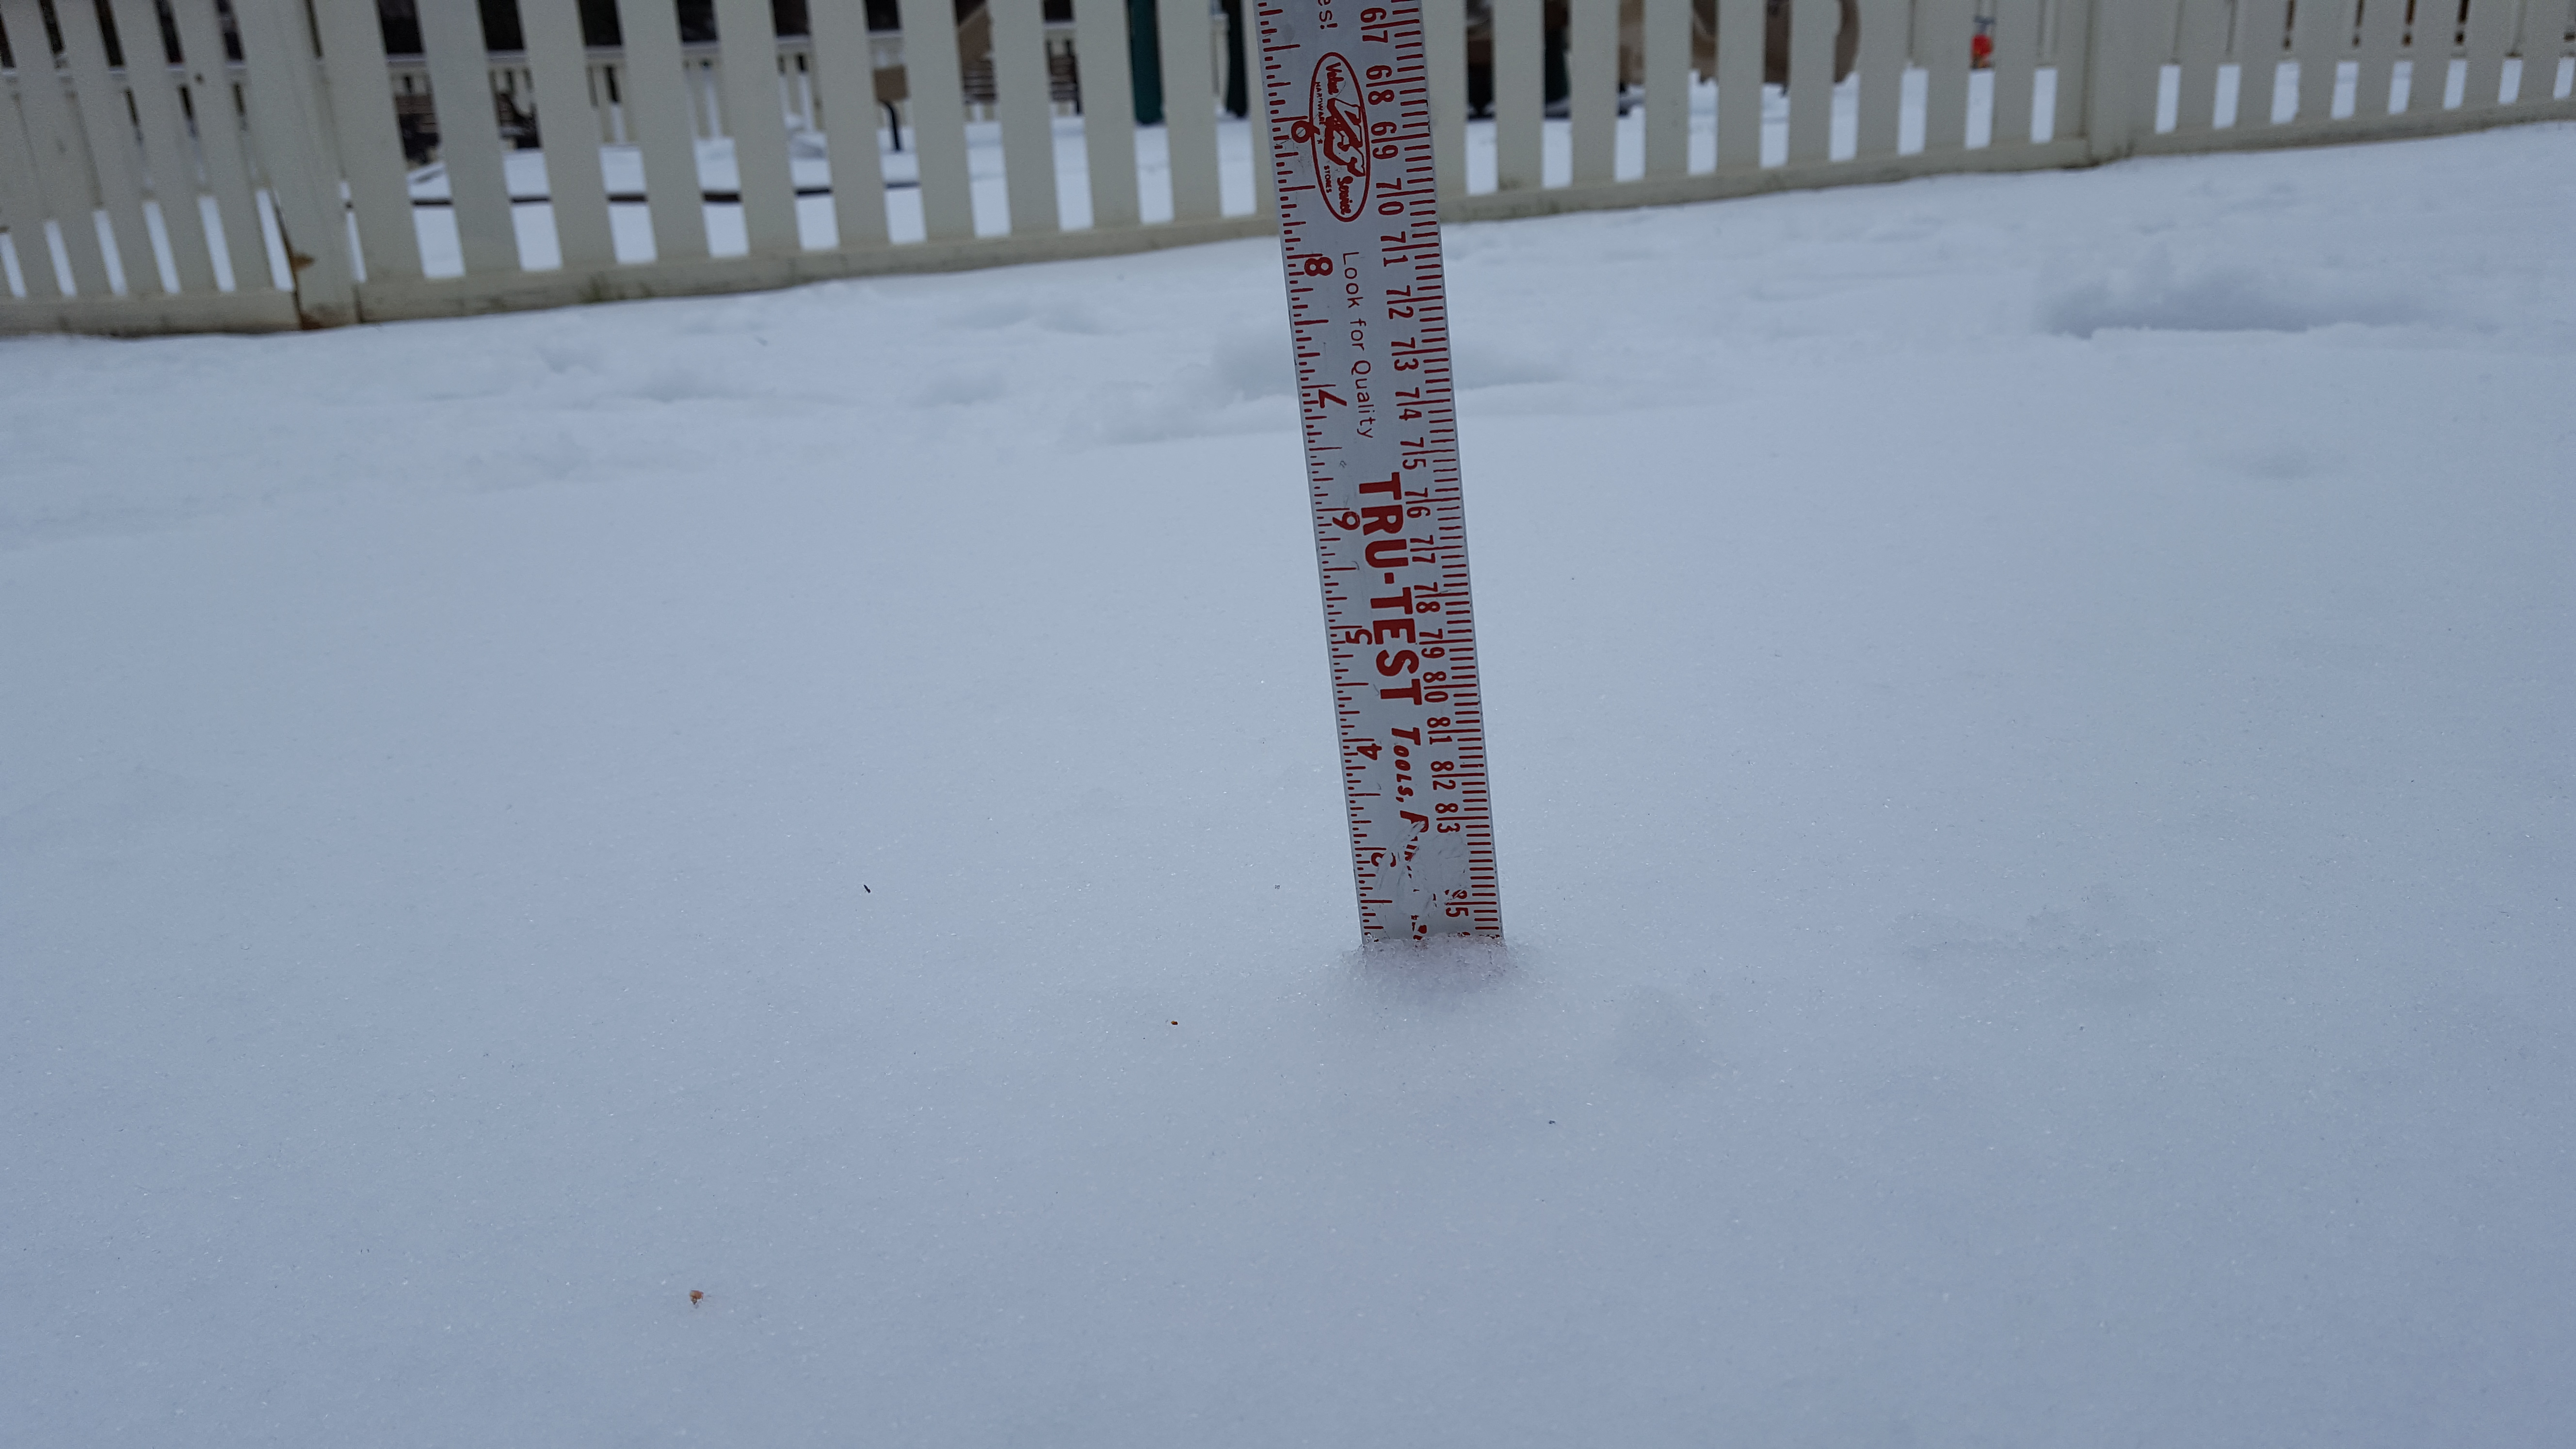 2 inches of snow in Alexandria, Va. on March 14, 2017